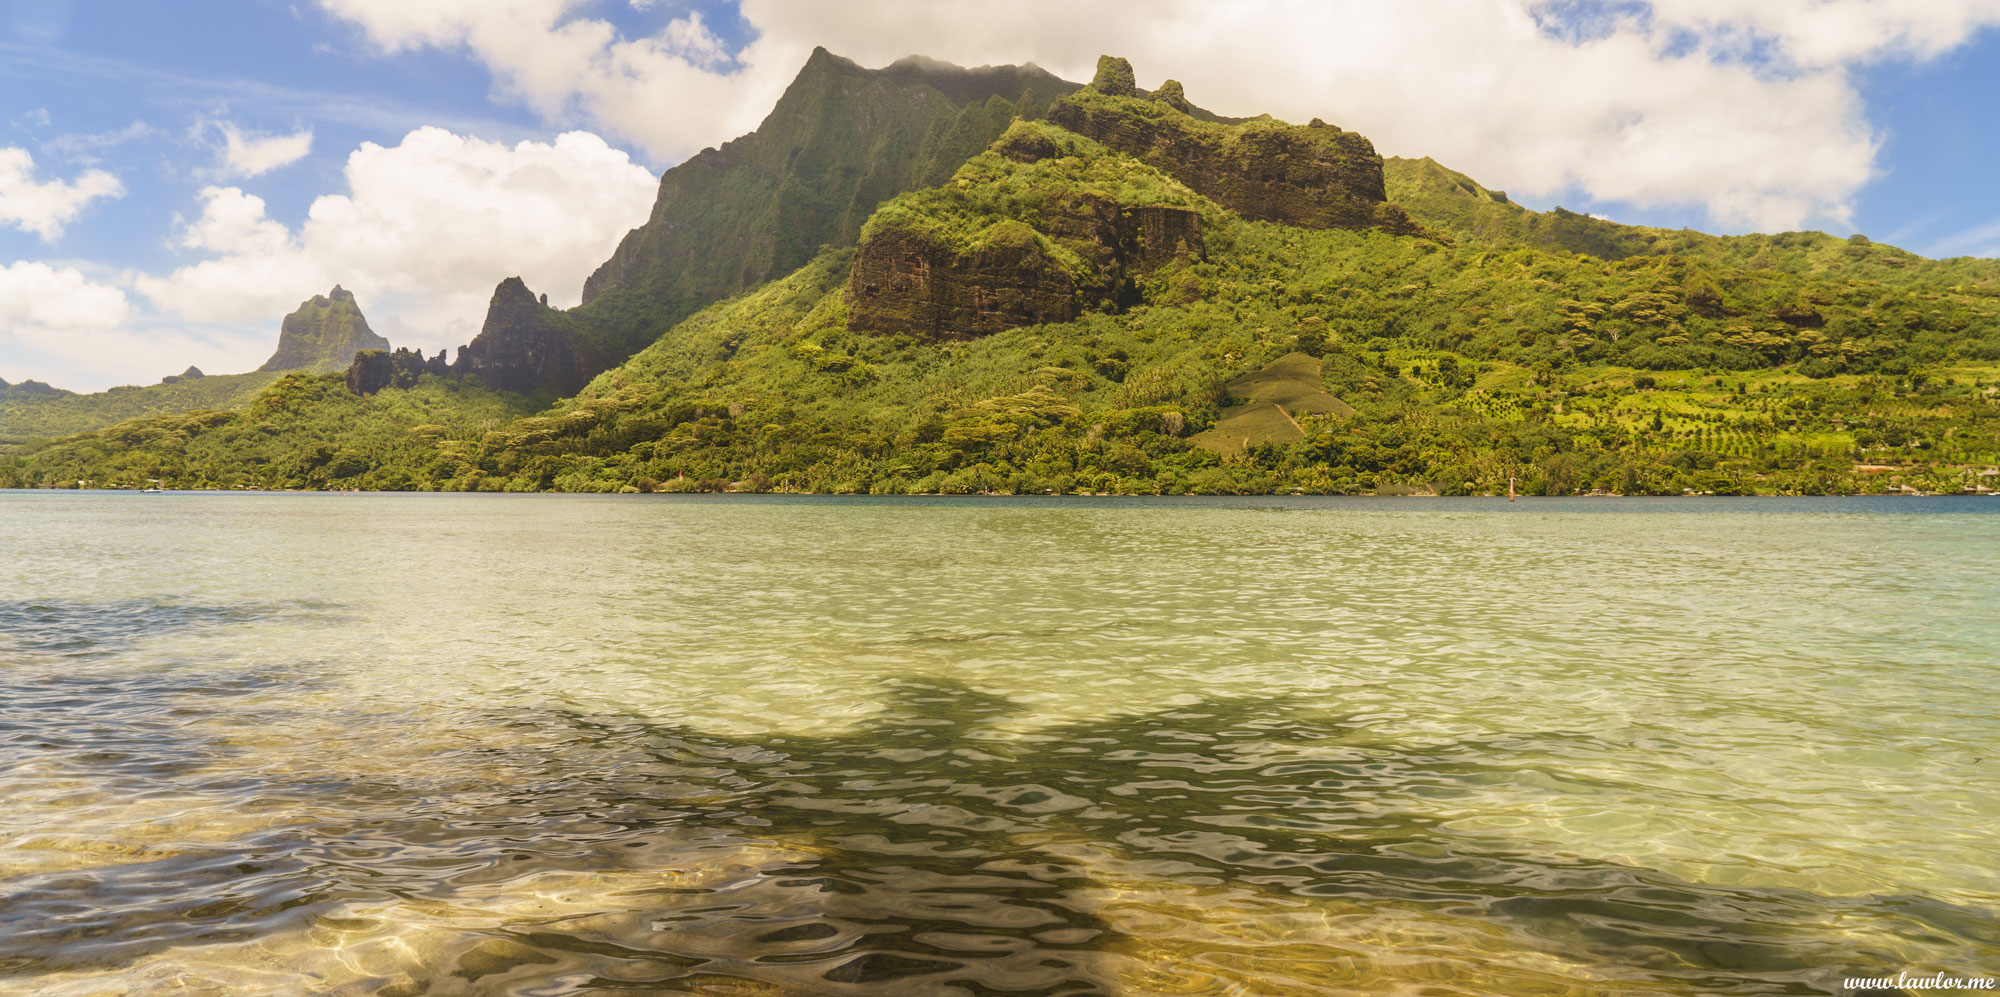 Cooks Bay, Moorea - French Polynesia, Free Landscape Photography, free landscape photos, free nature images, free HD images, free high definition stock images, free stock images download, desktop background, desktop wallpapers, free screensaver, landscape photography